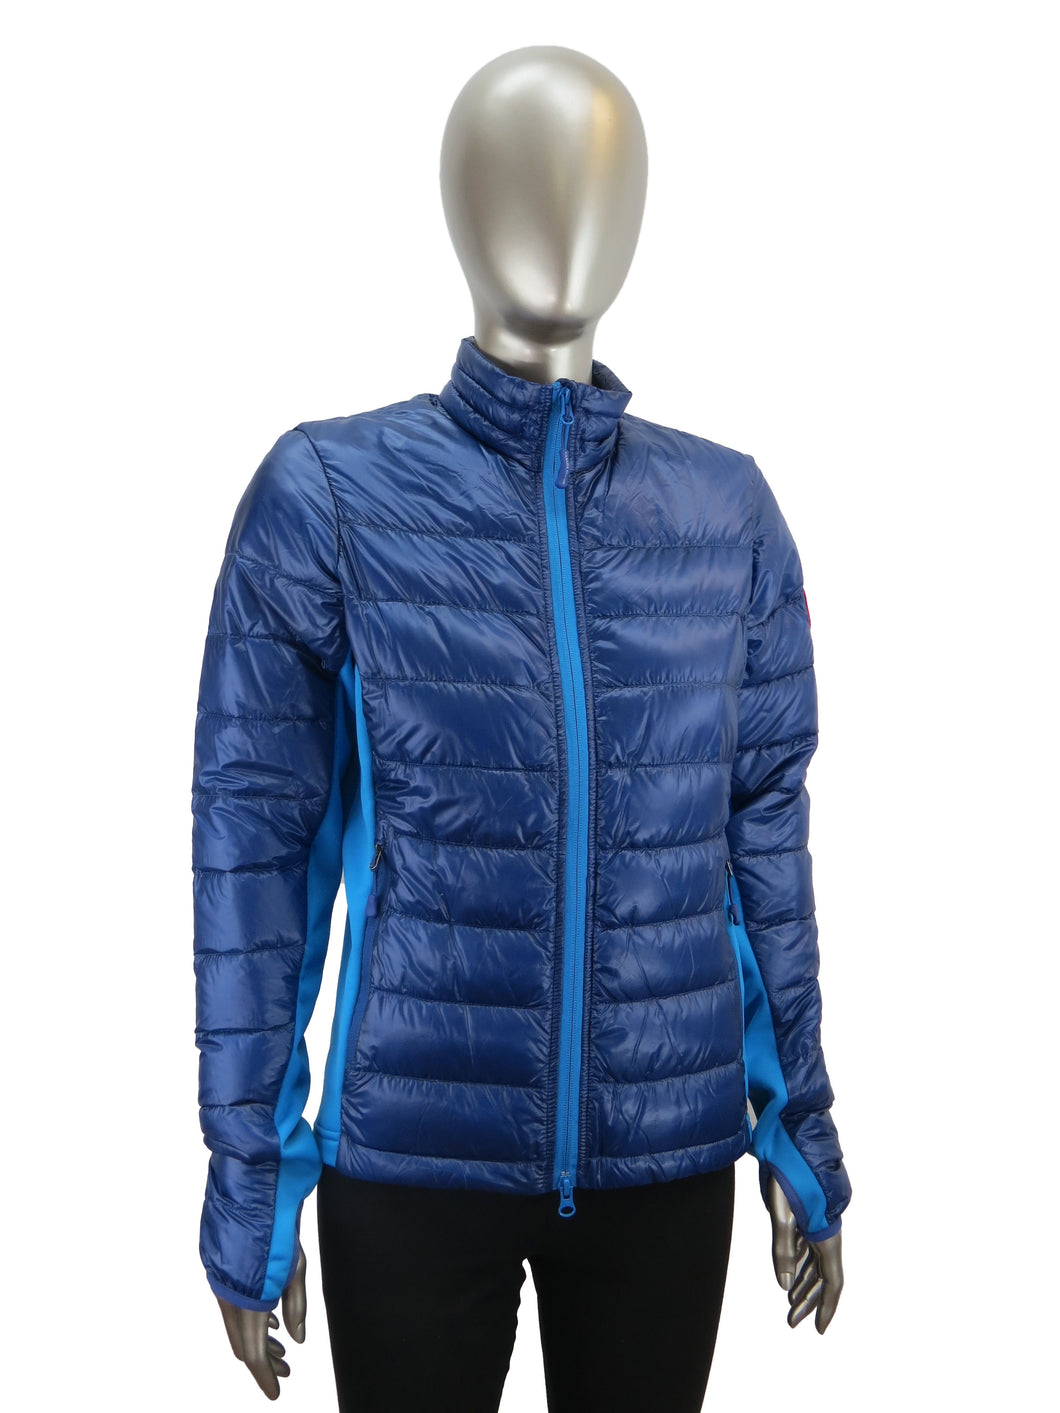 Canada Goose | 2701L | Hybridge Lite Jacket | Pacific Blue